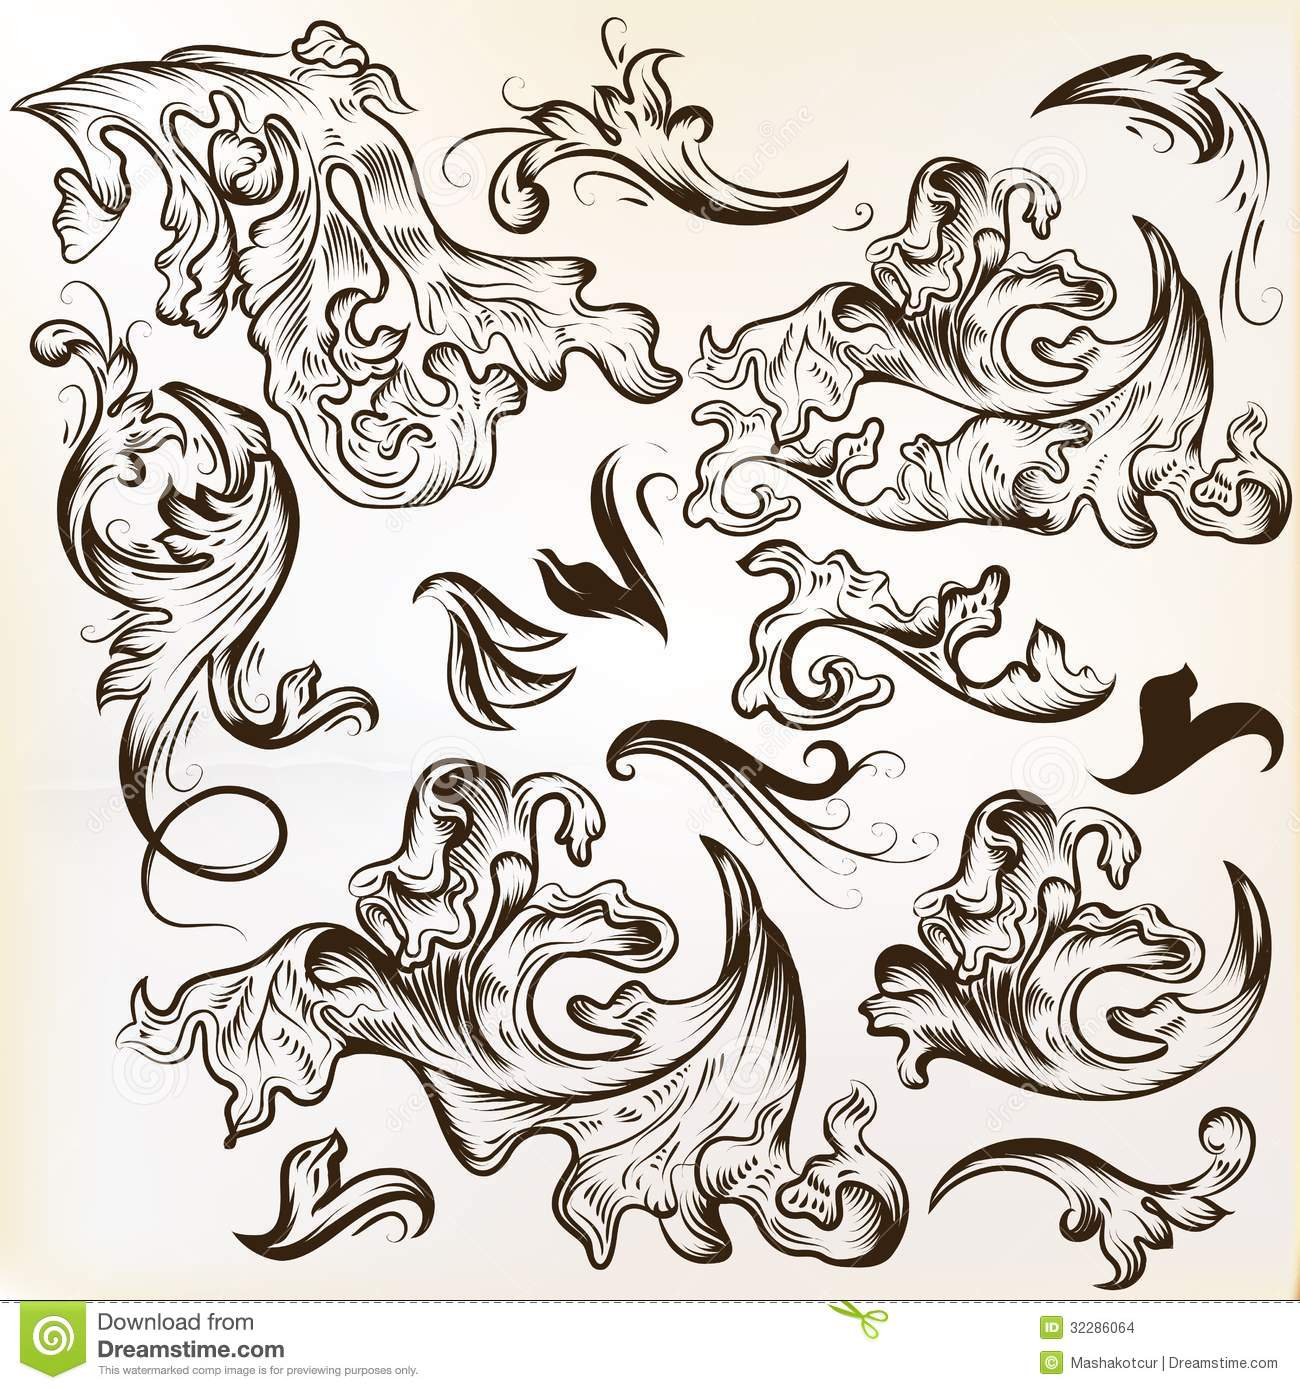 Stock Images Vector Set Hand Drawn Swirl Ornaments Vintage Design Calligraphic Elements Calligraphic Image32286064 on Victorian Ornamental Border Brown